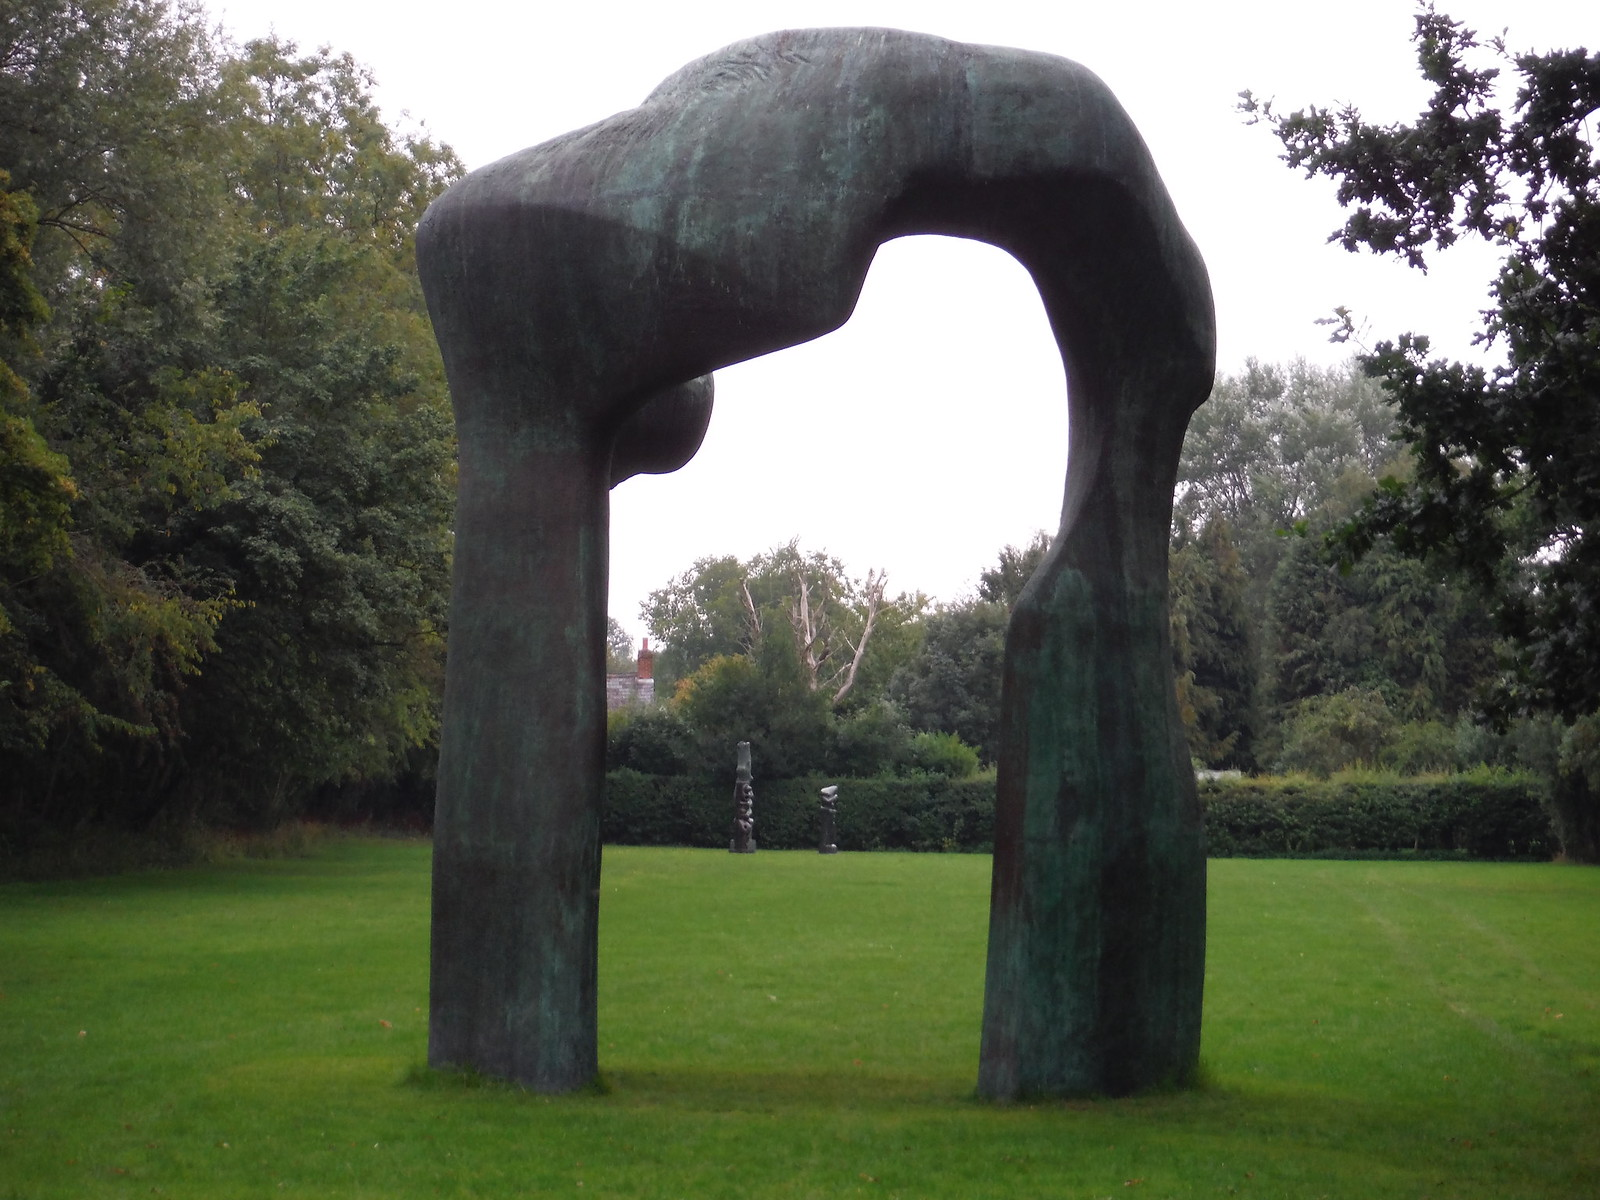 The Arch (1969) and Upright Motives (1955-56) SWC Walk 164 Roydon to Sawbridgeworth via Henry Moore Foundation